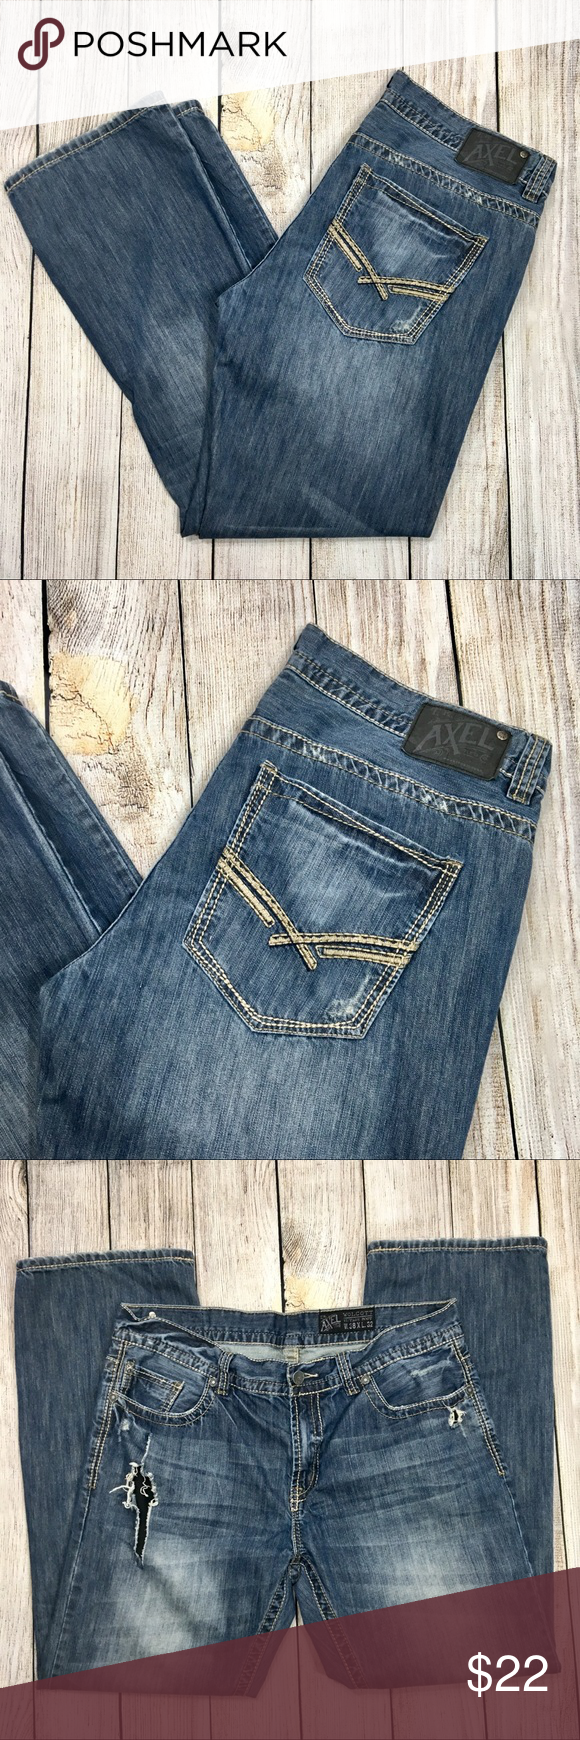 """ecde54dff23 {axel} Mens Destroyed Wolcott Vtg Boot Cut Jeans Mens destroyed, distressed  blue """"Wolcott Vintage Boot"""" jeans by Axel. Size W38 x L32."""